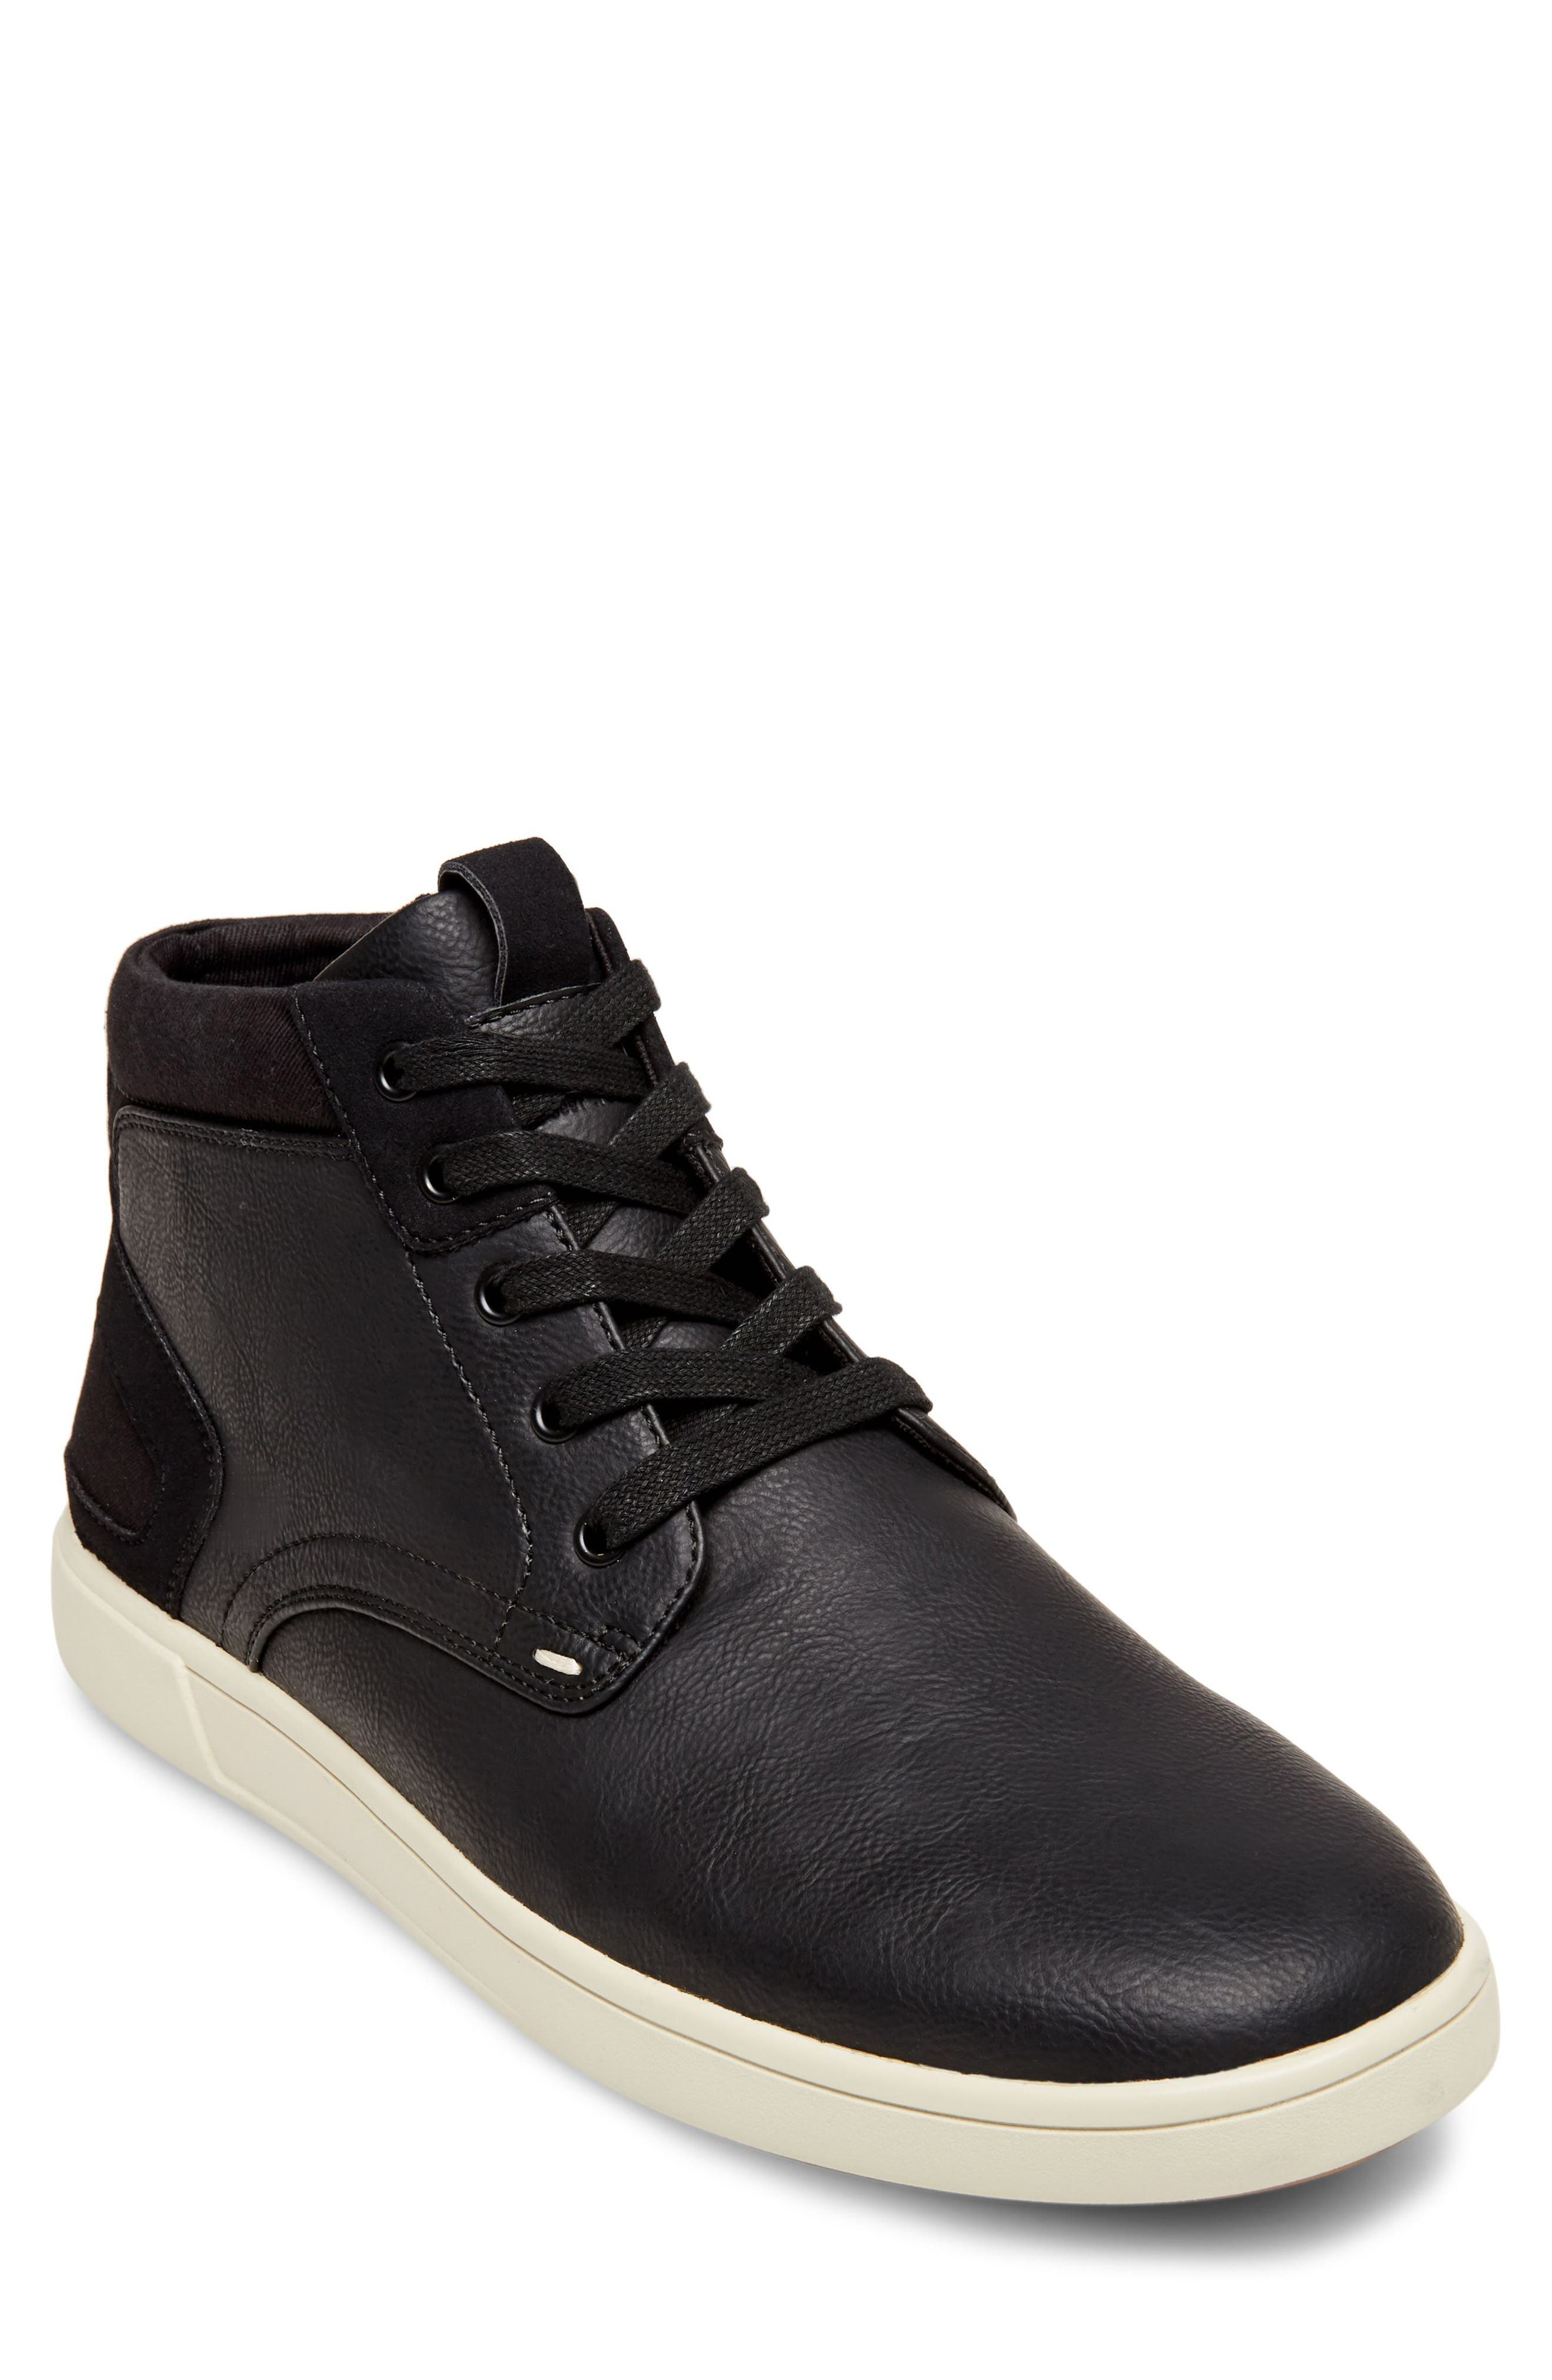 Forsyth High Top Sneaker,                             Main thumbnail 1, color,                             Black Leather